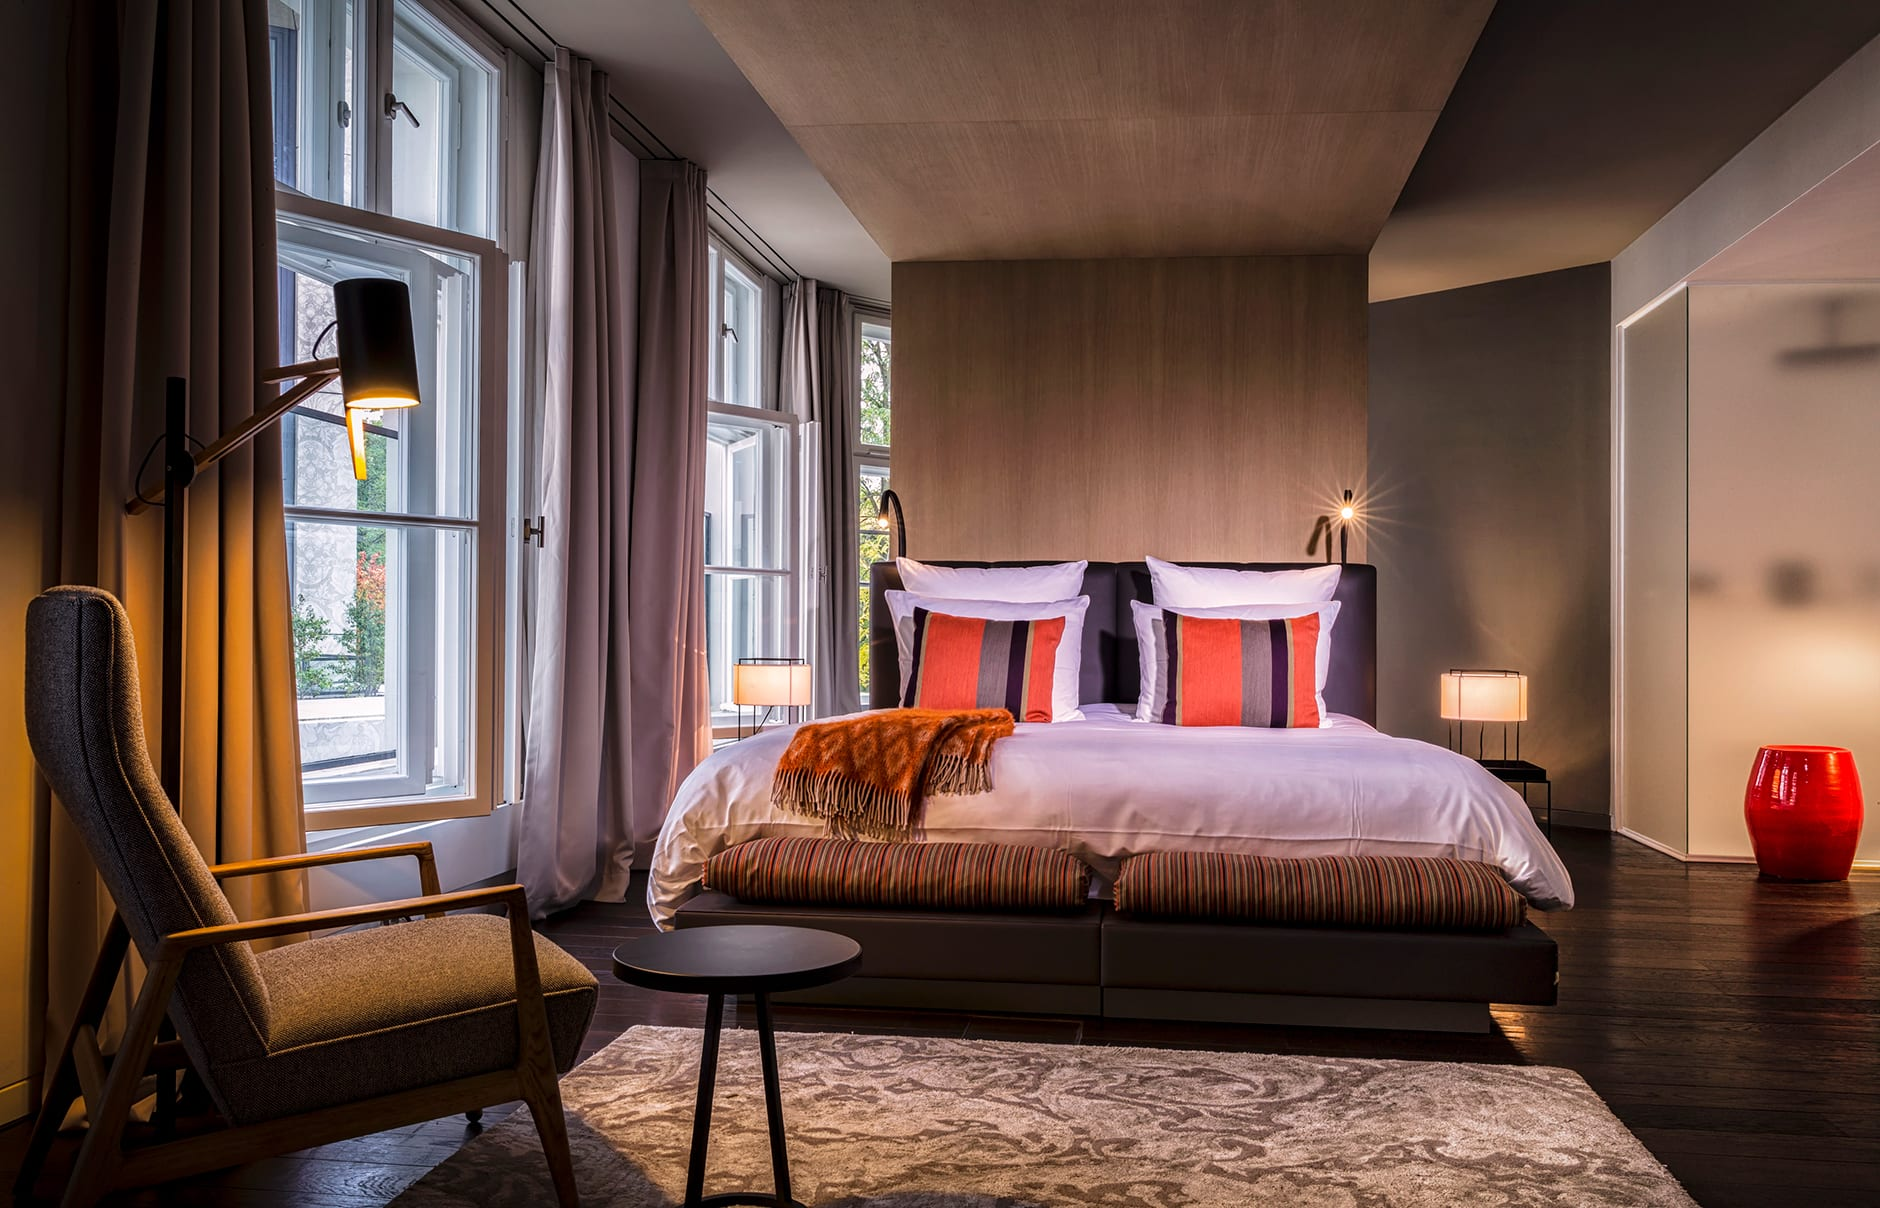 SO/ Berlin Das Stue, Berlin, Germany. Hotel Review by TravelPlusStyle. Photo © Das Stue